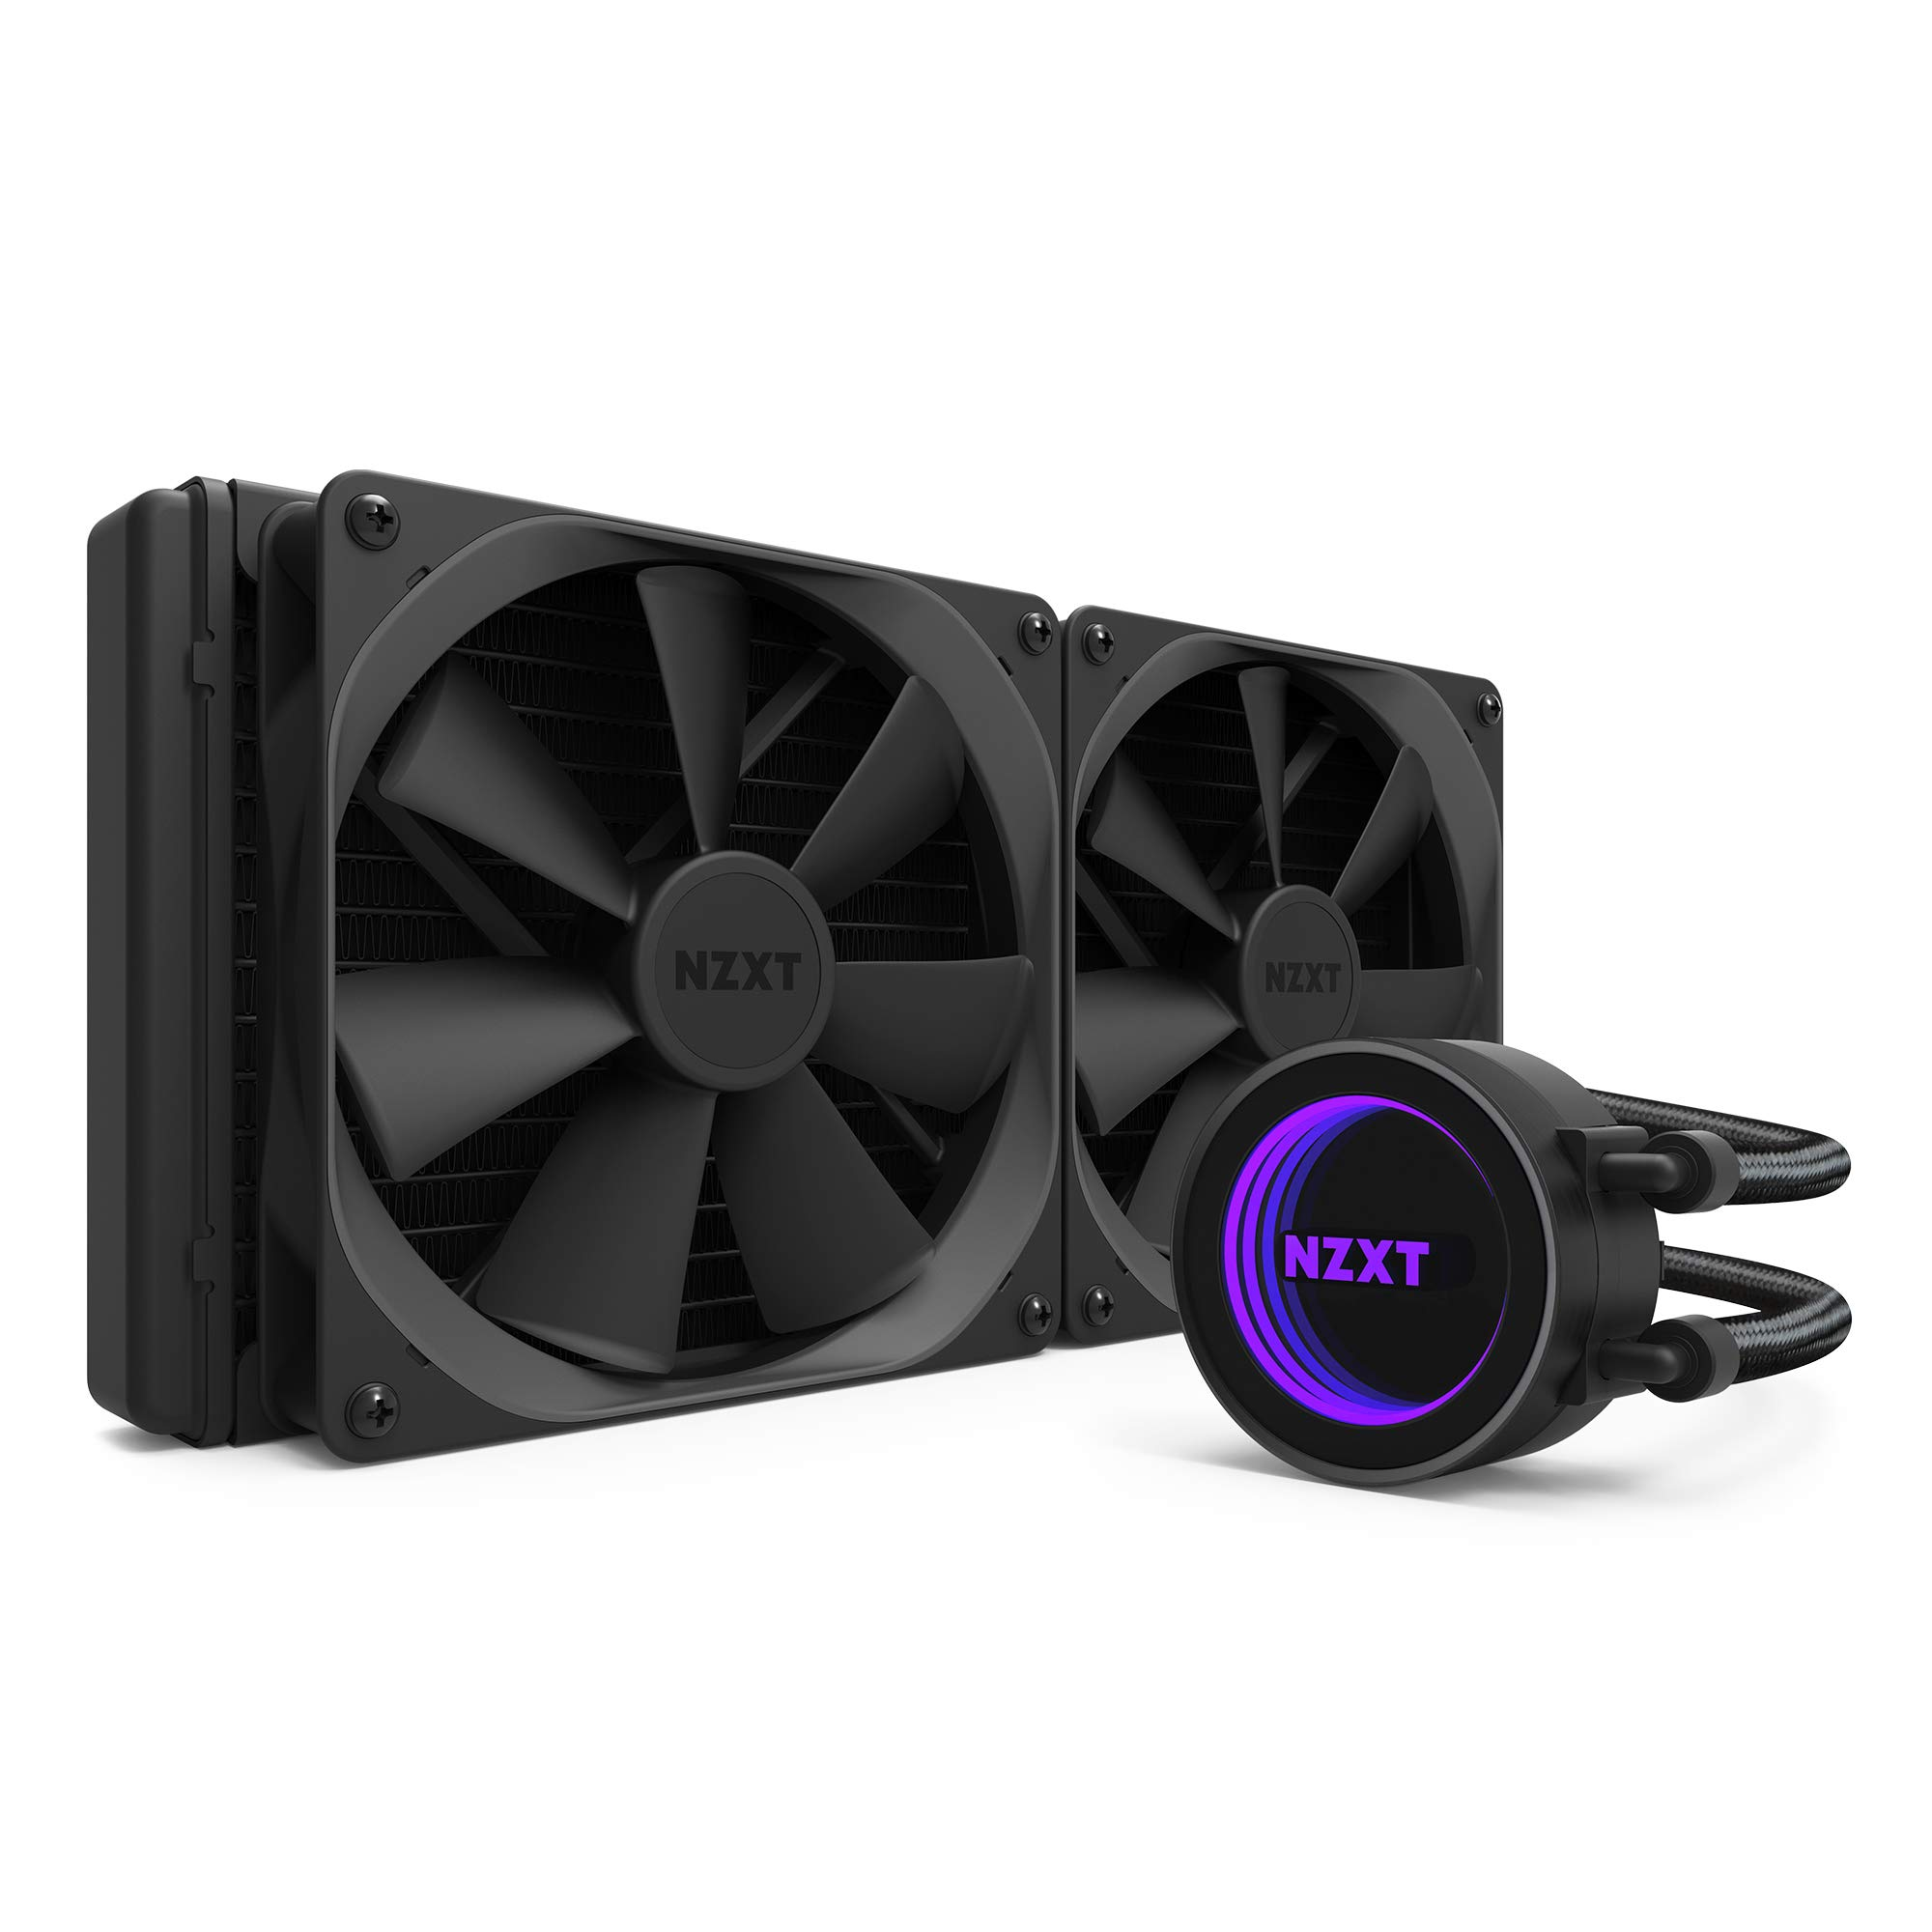 NZXT Kraken X62 (280mm) All-in-One Water Cooling Unit with AM4 Bracket by NZXT